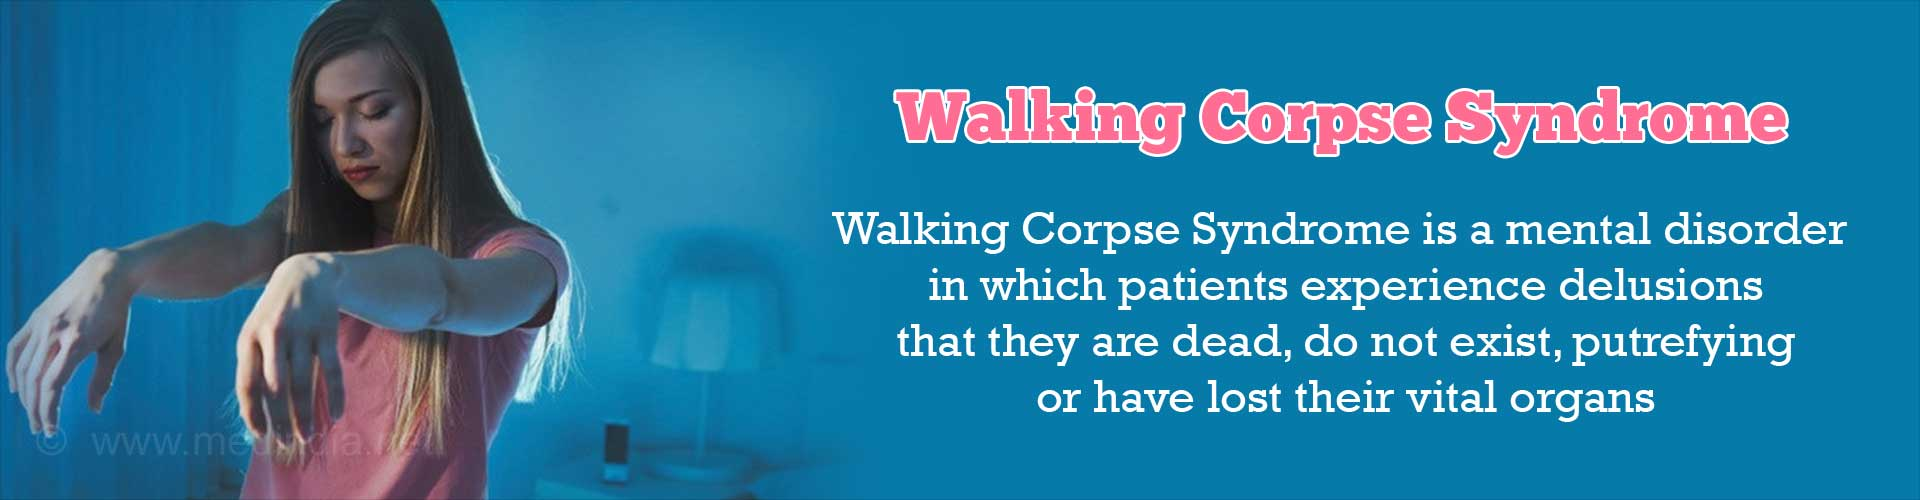 Walking Corpse Syndrome: Symptoms, Signs, Diagnosis & Treatment